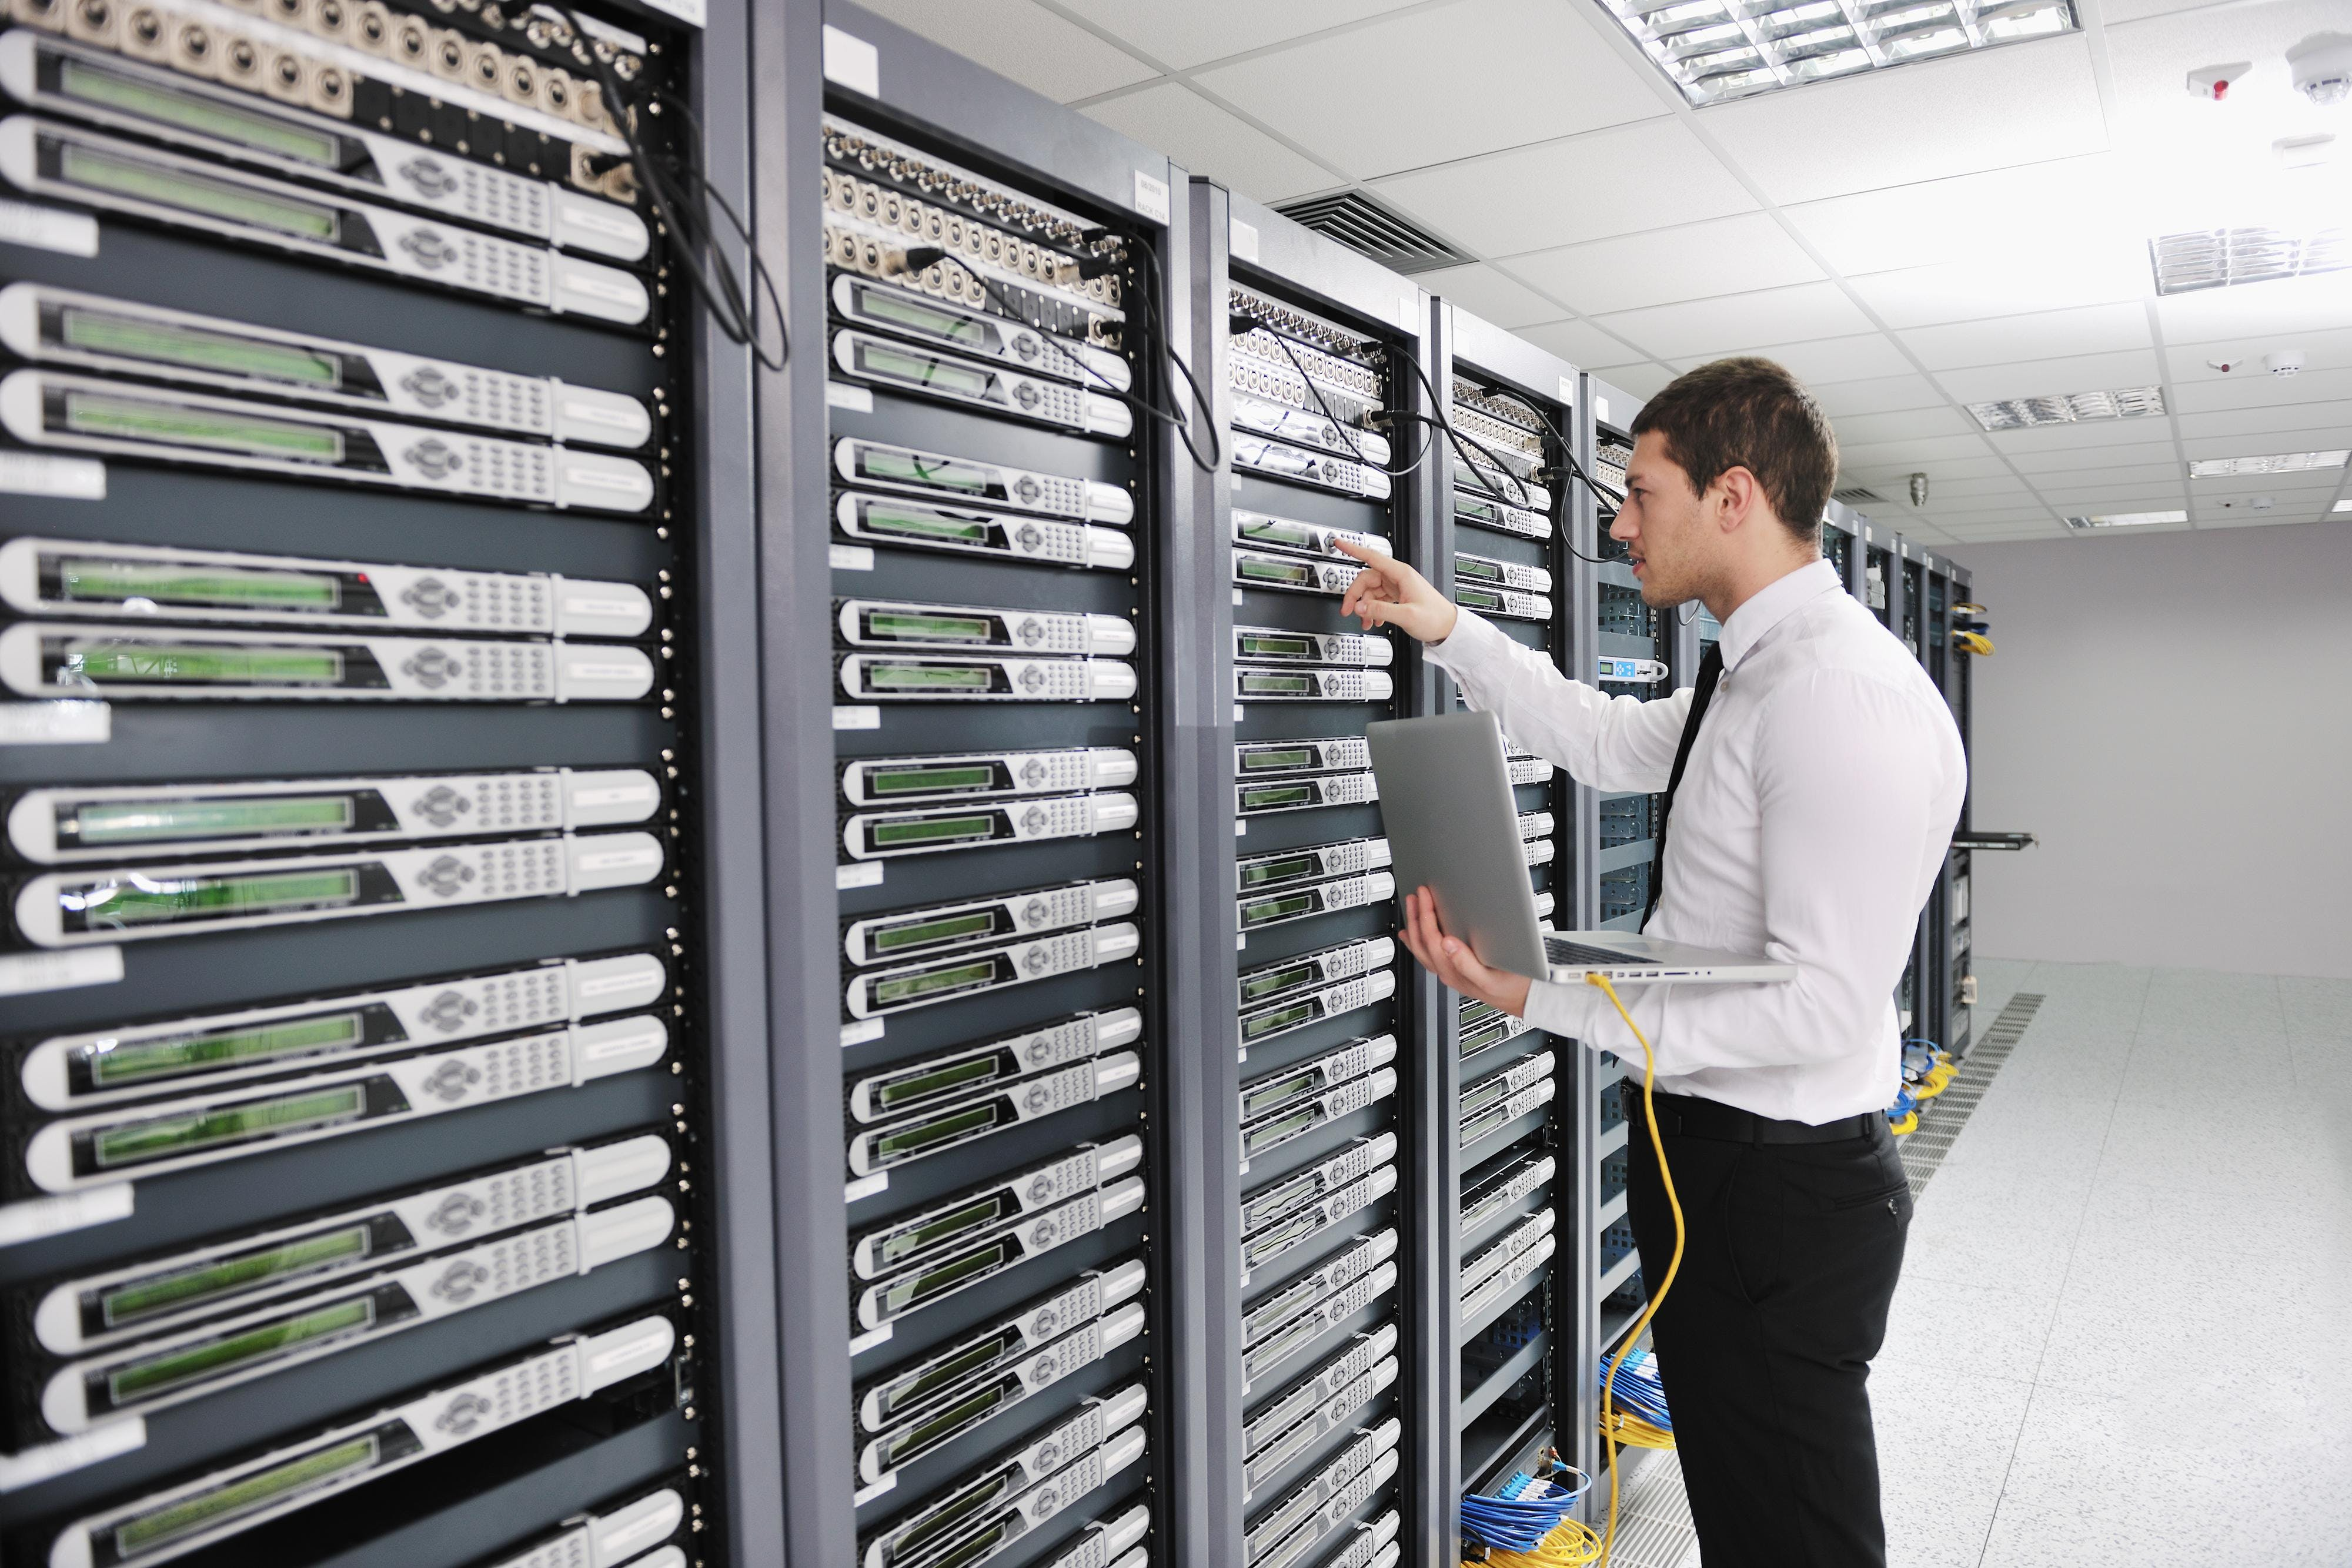 FREE CISCO's CCNA ROUTING & SWITCHING COURSE IN GLASGOW